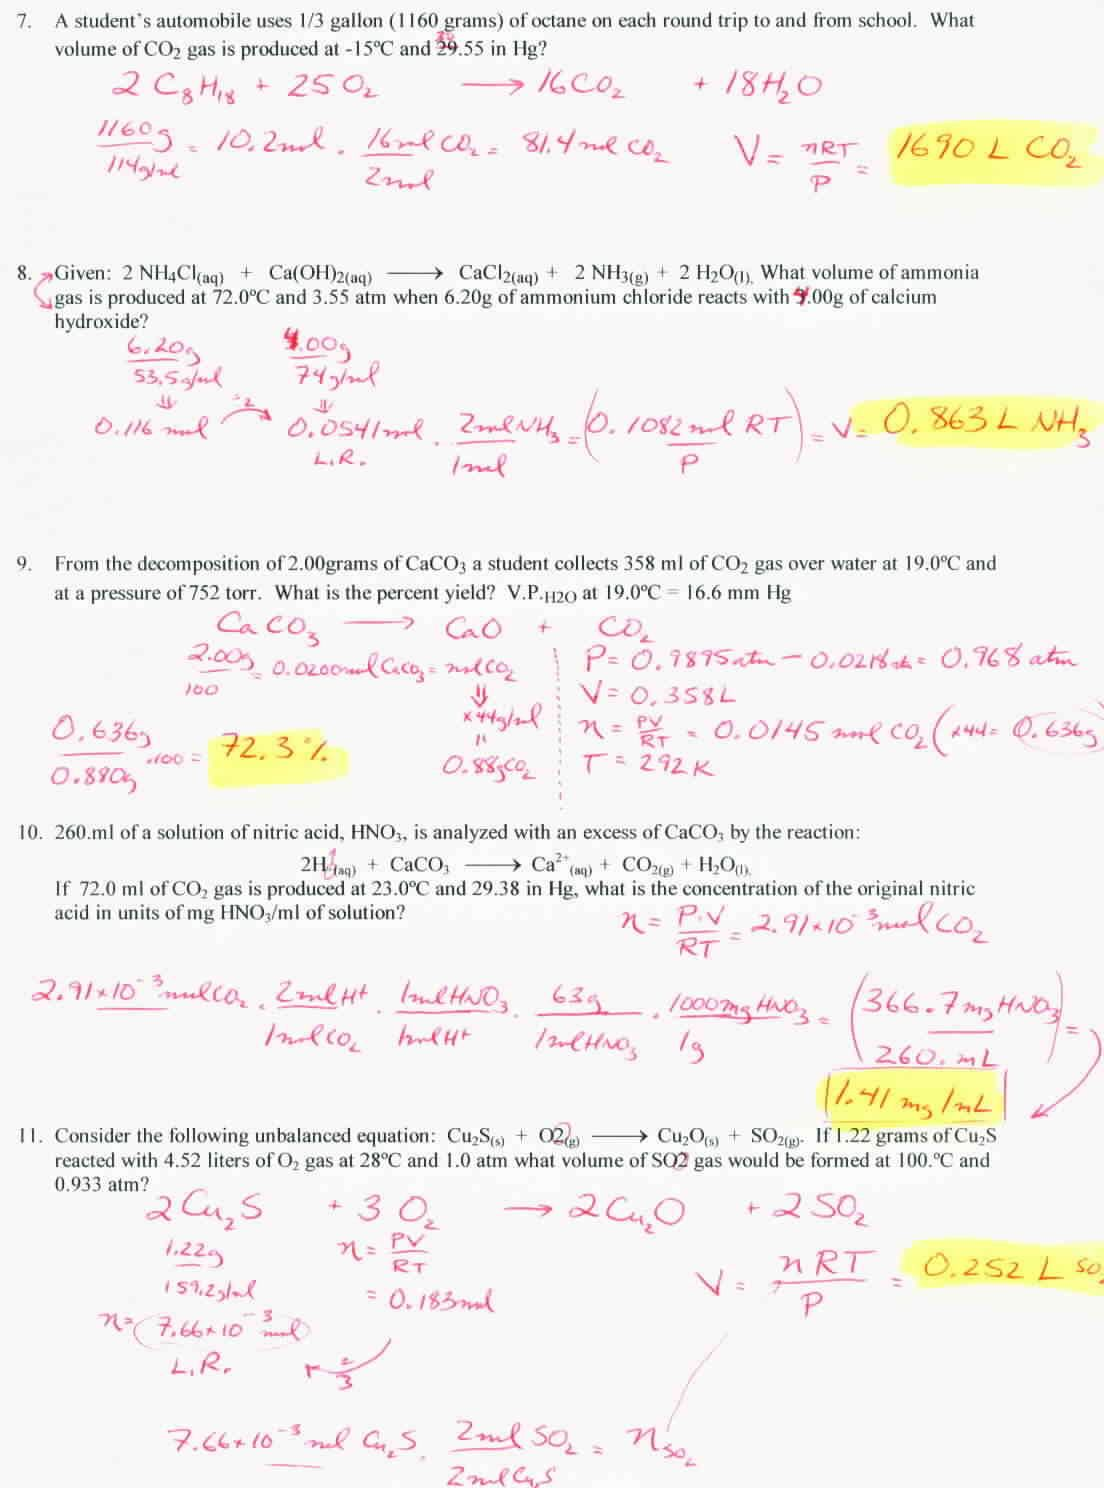 worksheet Gas Volume Calculations Worksheet stoichiometry and avogadro s principle gas worksheet worksheet